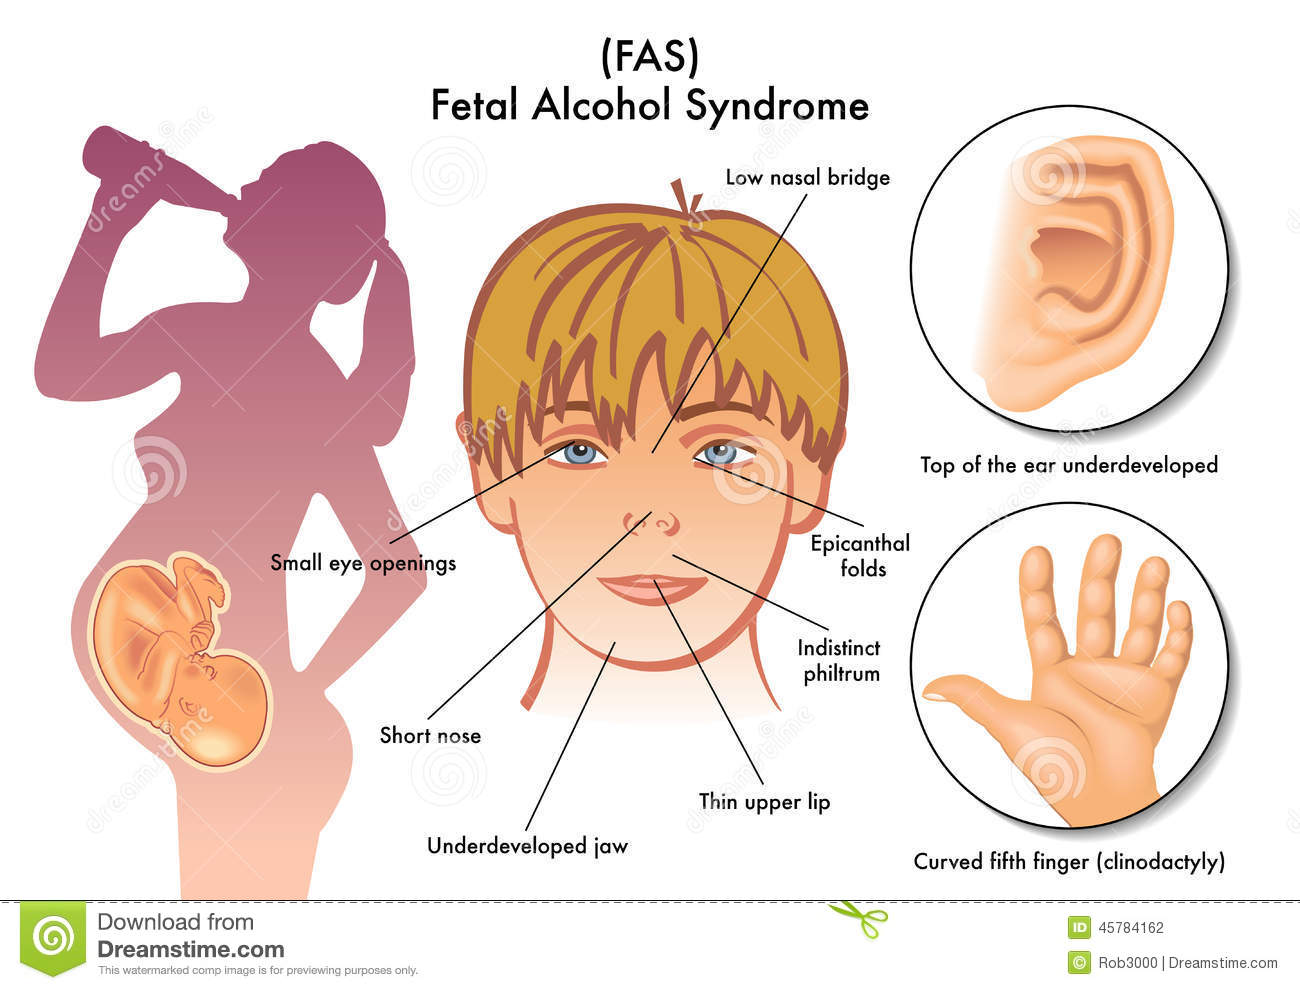 GALLERY: Fetal Alcohol Syndrome Hands